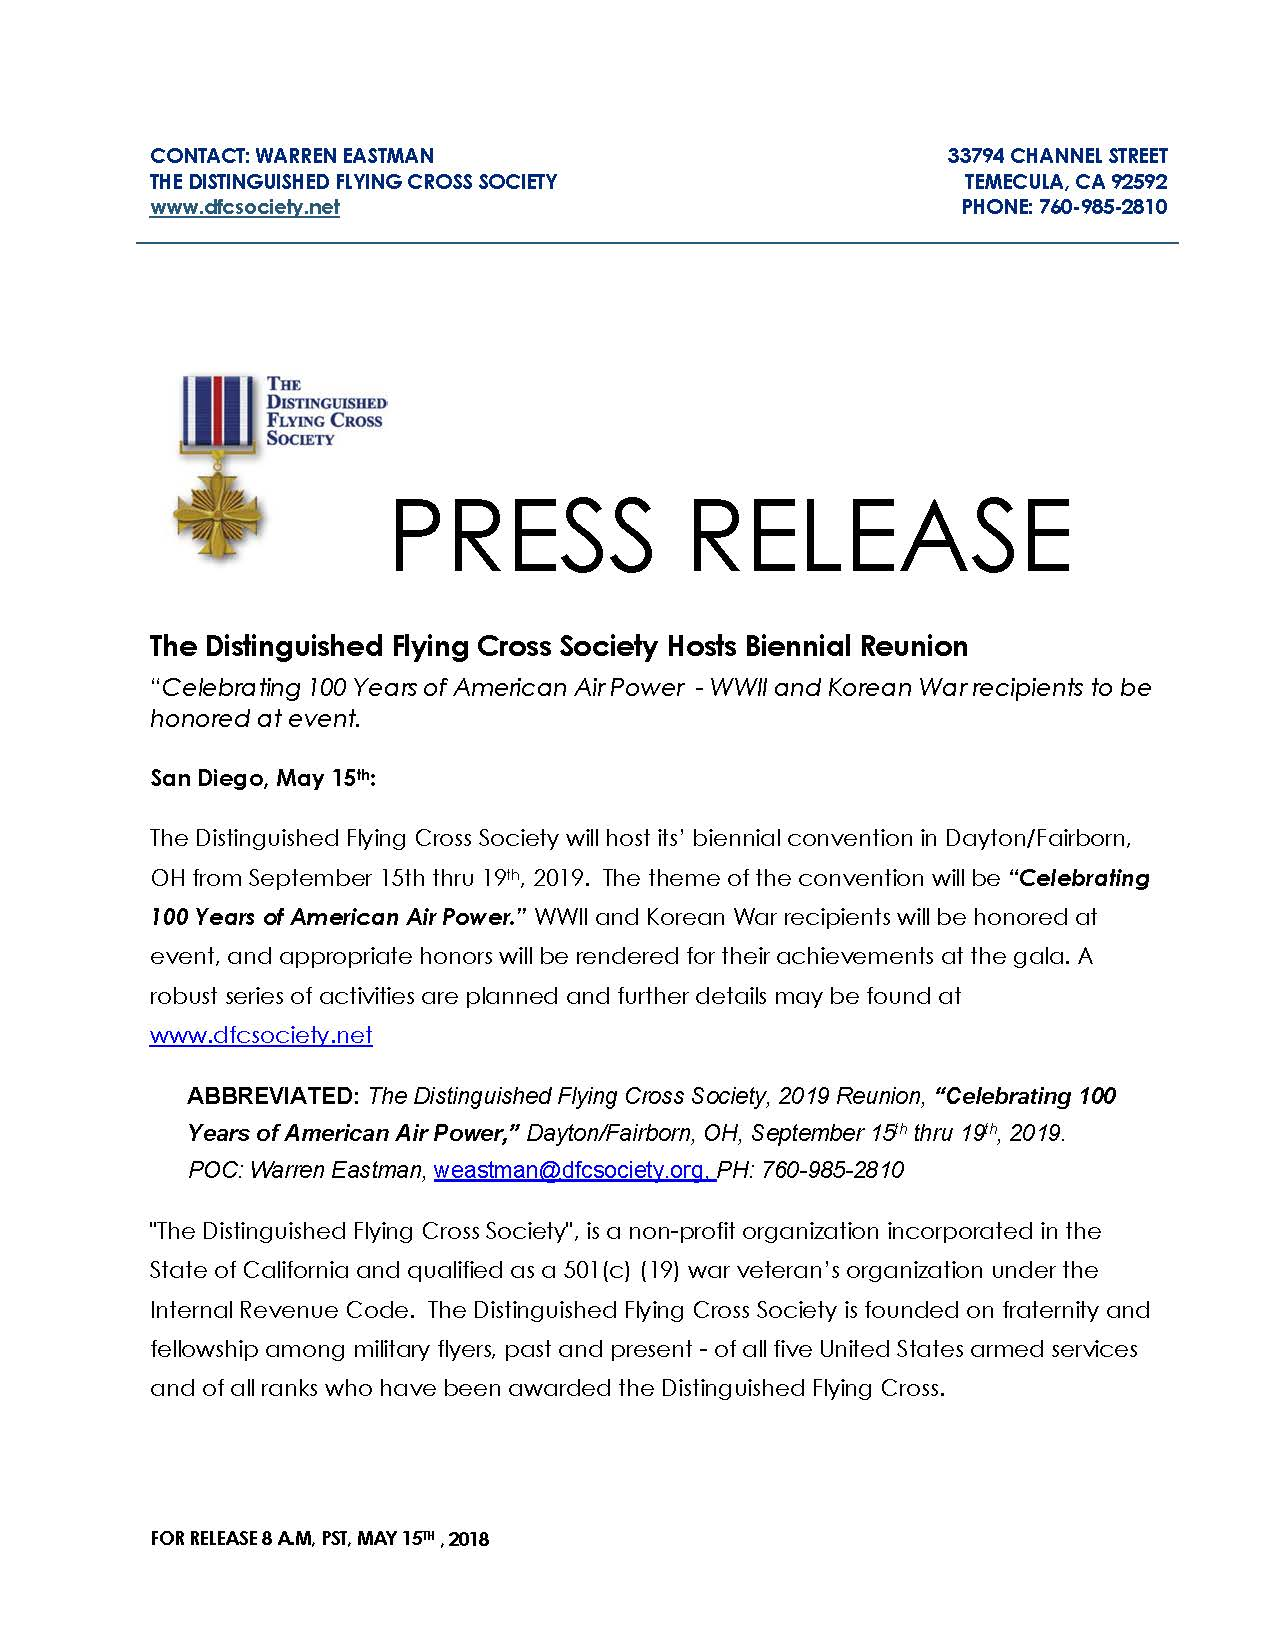 Press Release DFC Society Reunion 2019